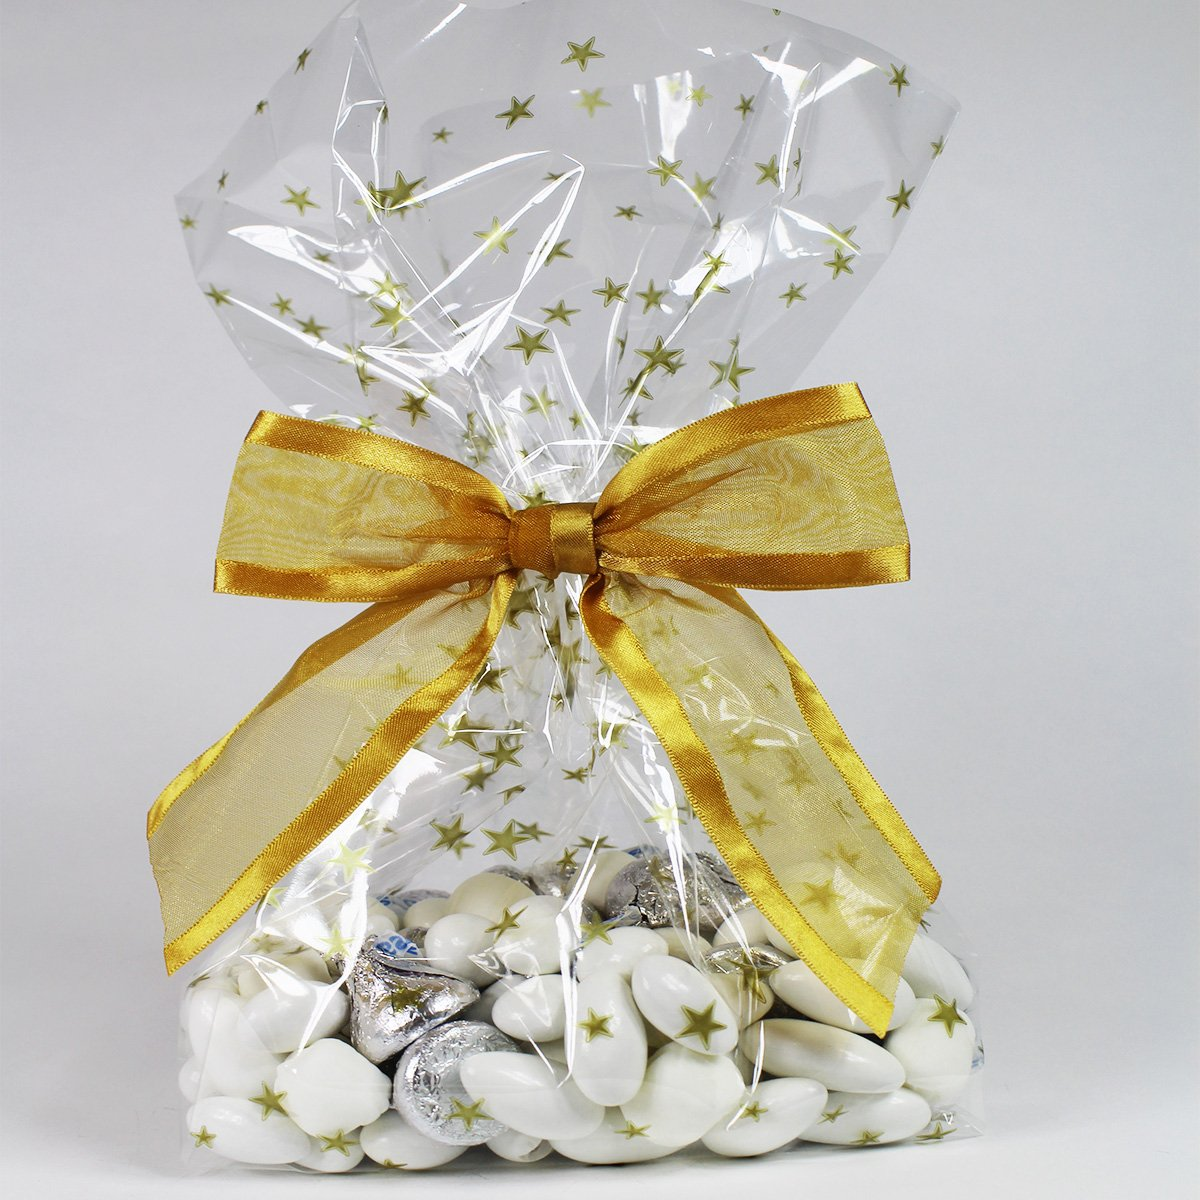 Gold Stars Cellophane Treat/Party Favor Bags with Twist-Tie Organza Bow. Set of 10 Ready-to-Use, Gusseted 11x5x3 Goodie Bags with Bow. Gold/Clear